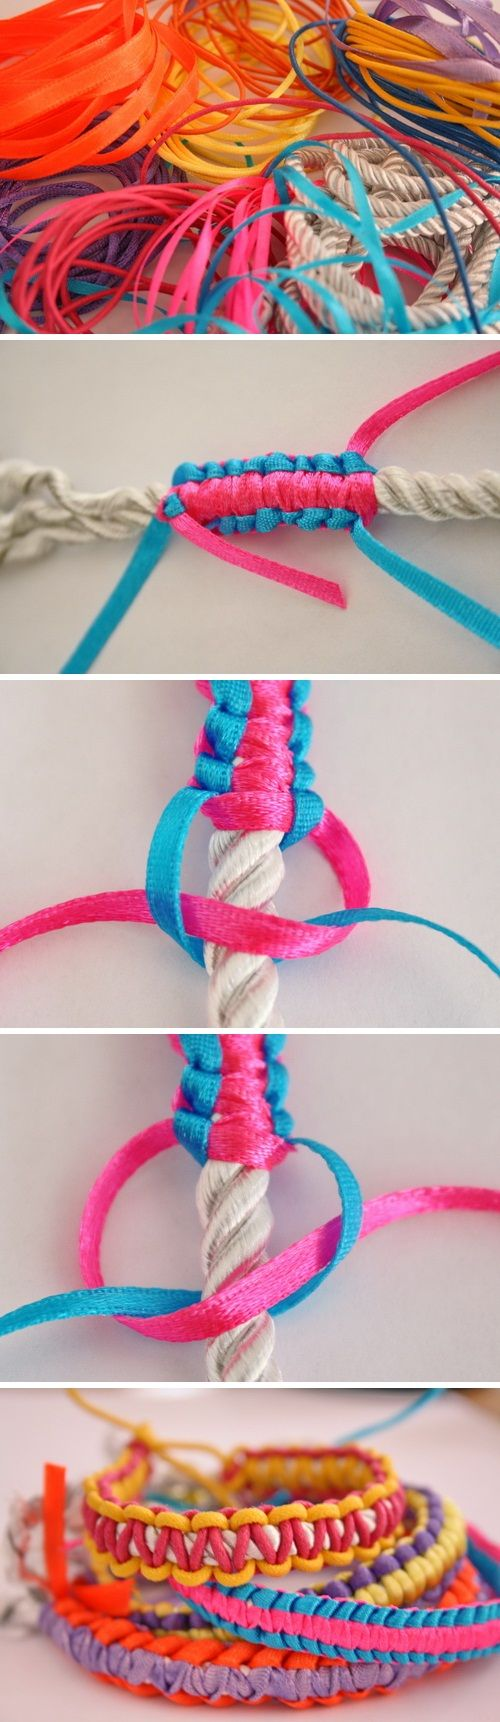 How To Make Sweet Bracelets